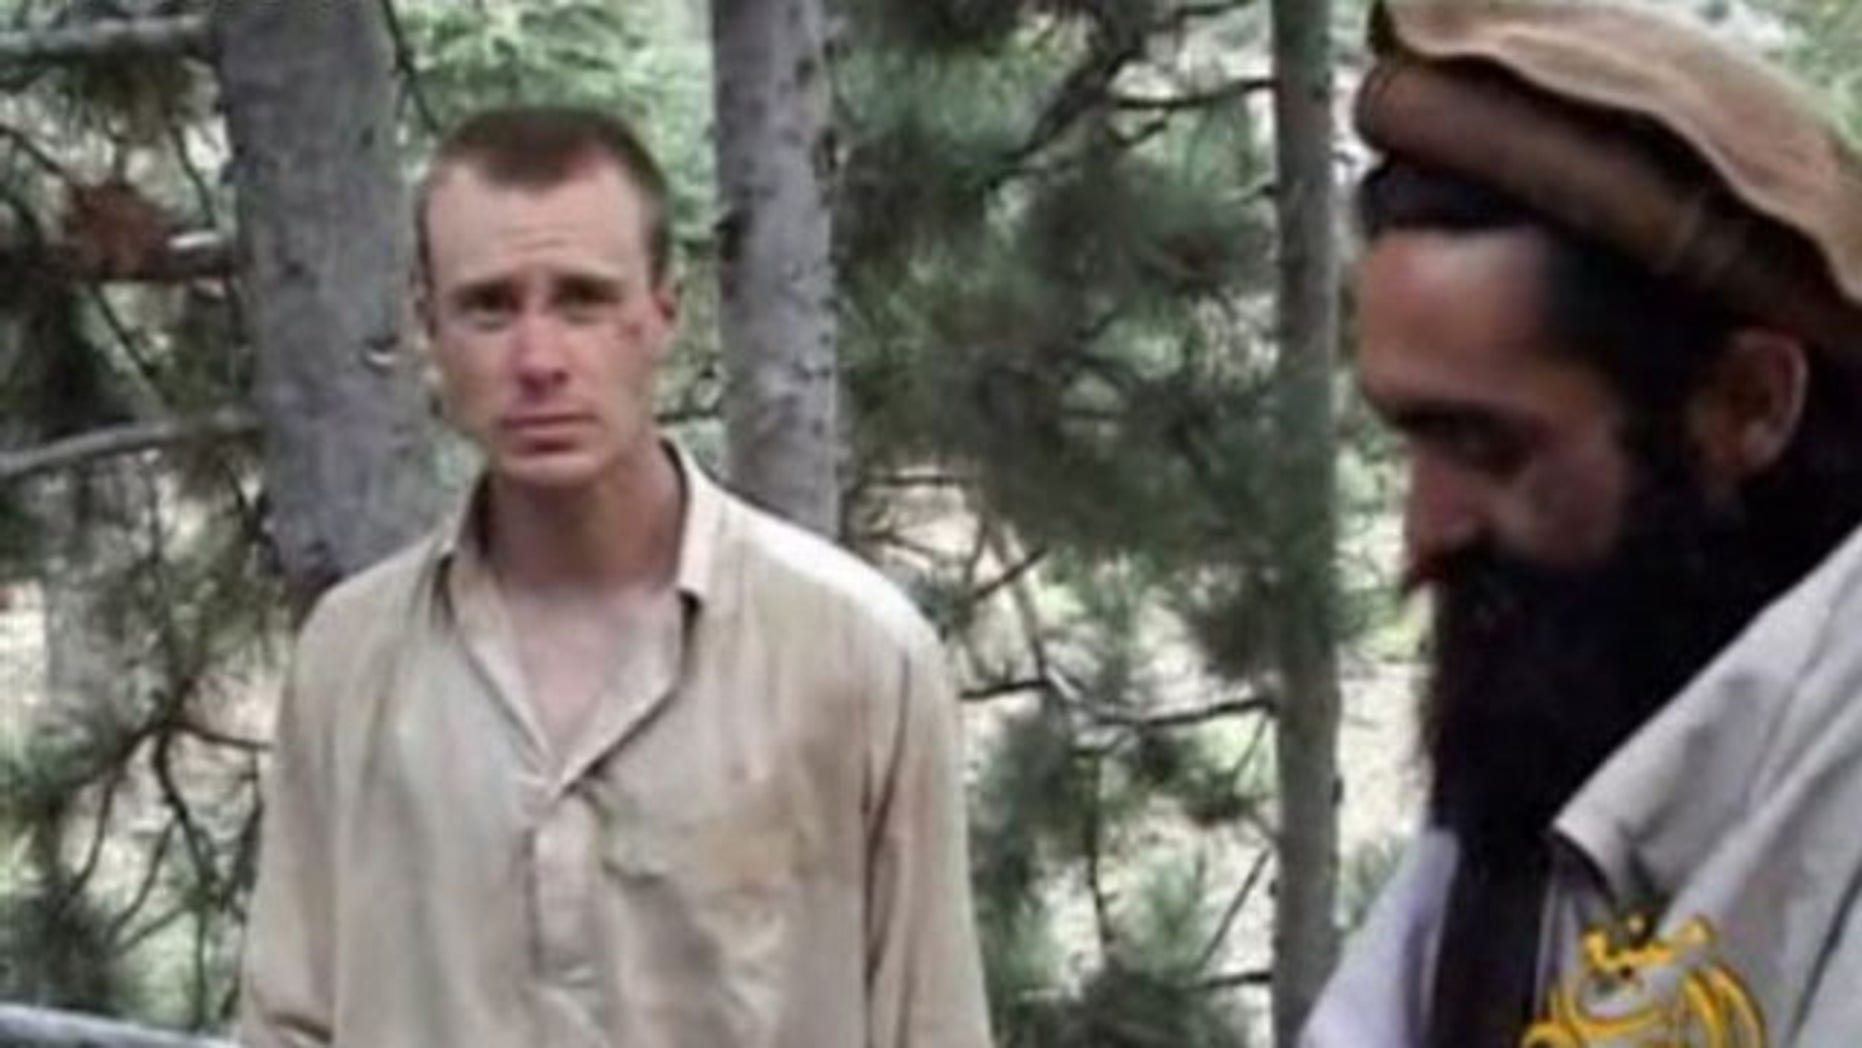 While US policy states the government won't negotiate with terrorists, it agreed to trade five Taliban leaders for US Army Sgt. Bowe Bergdahl.